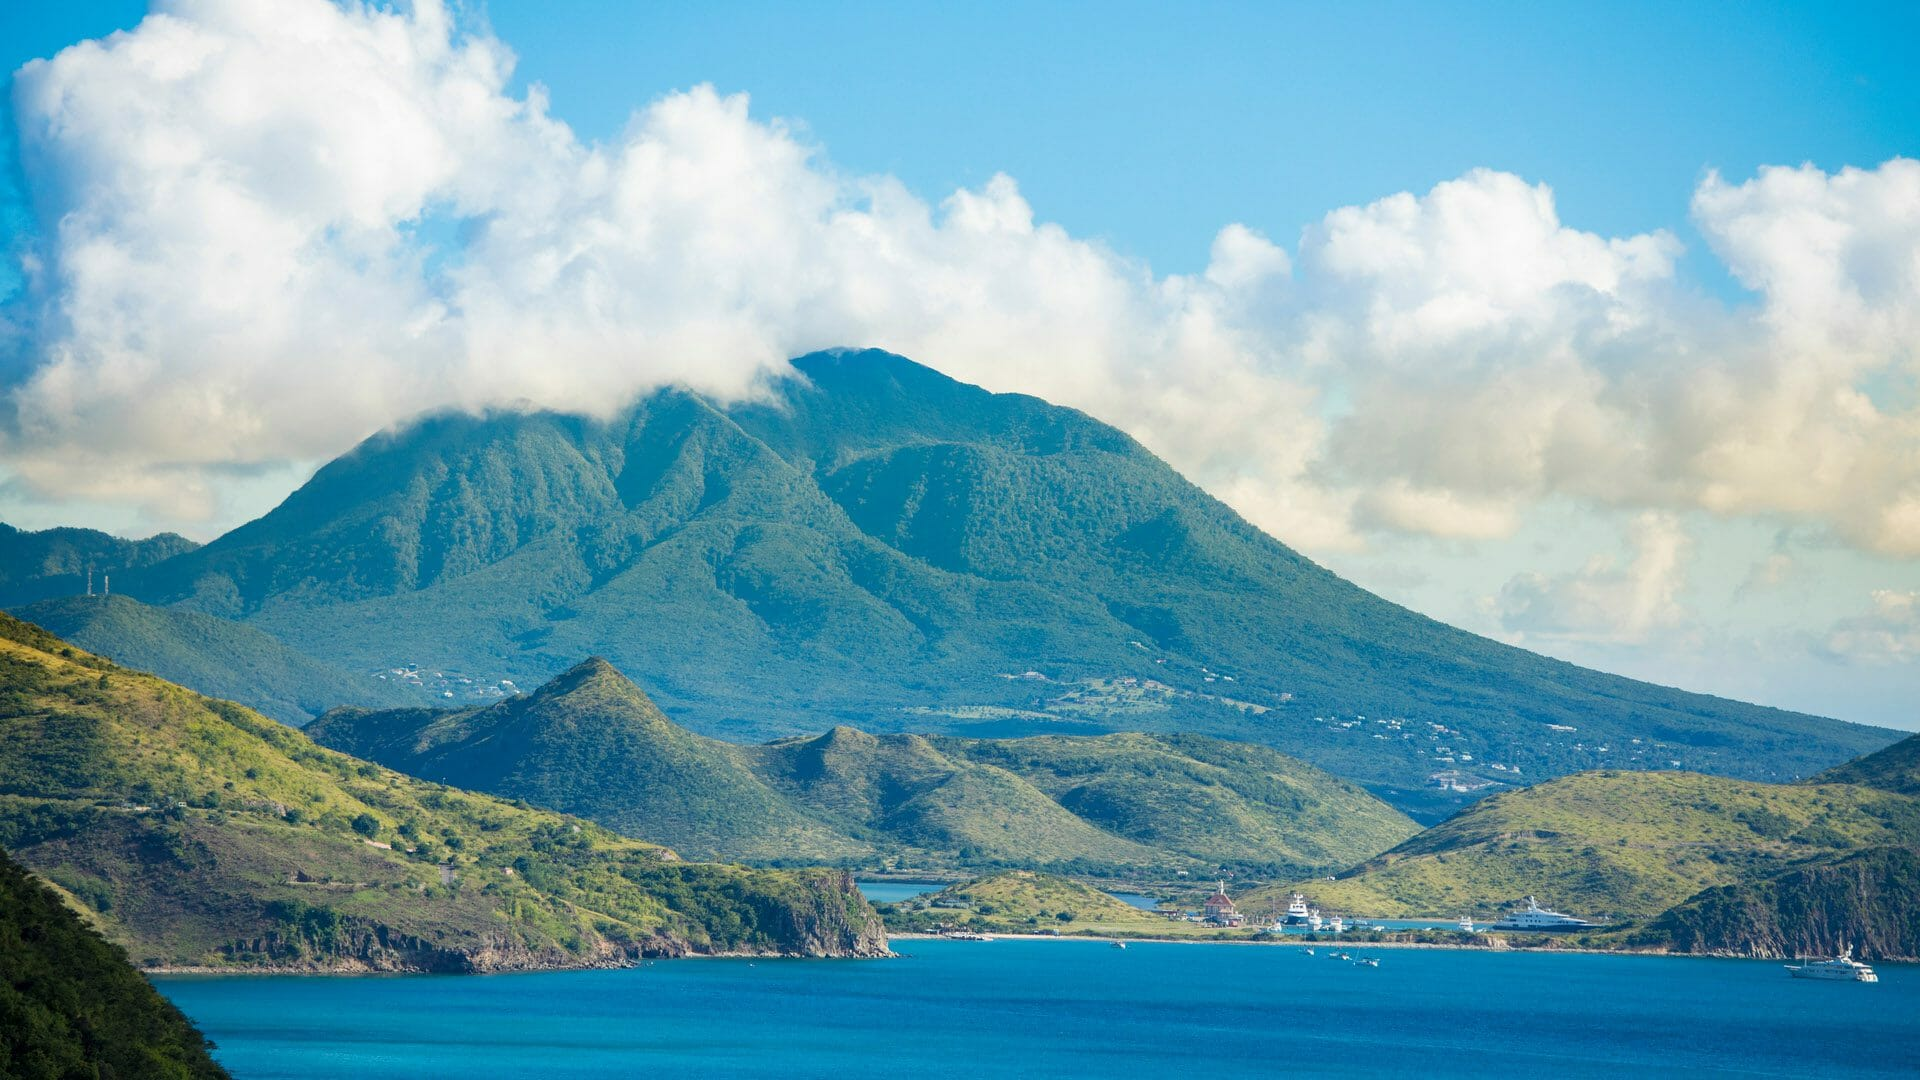 A scenic view showing Nevis